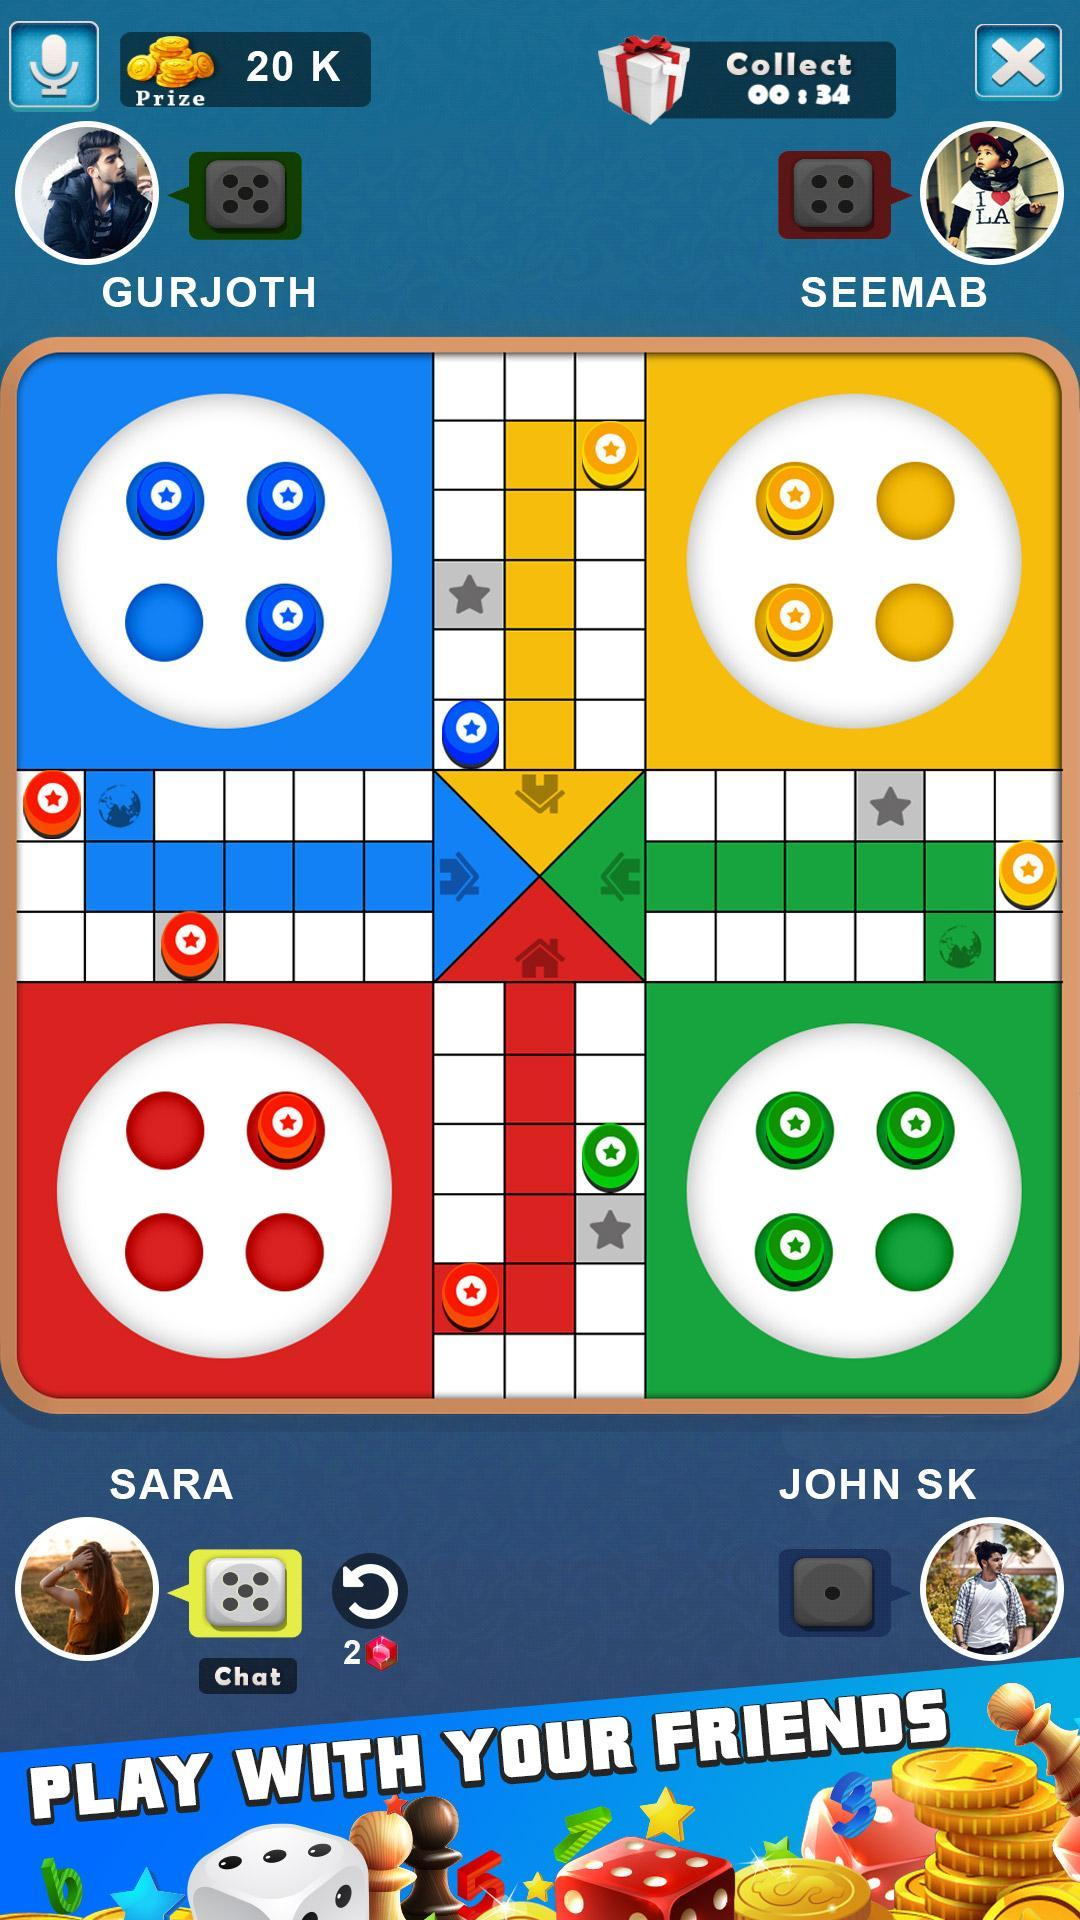 King of Ludo Dice Game with Free Voice Chat 2020 1.5.2 Screenshot 2